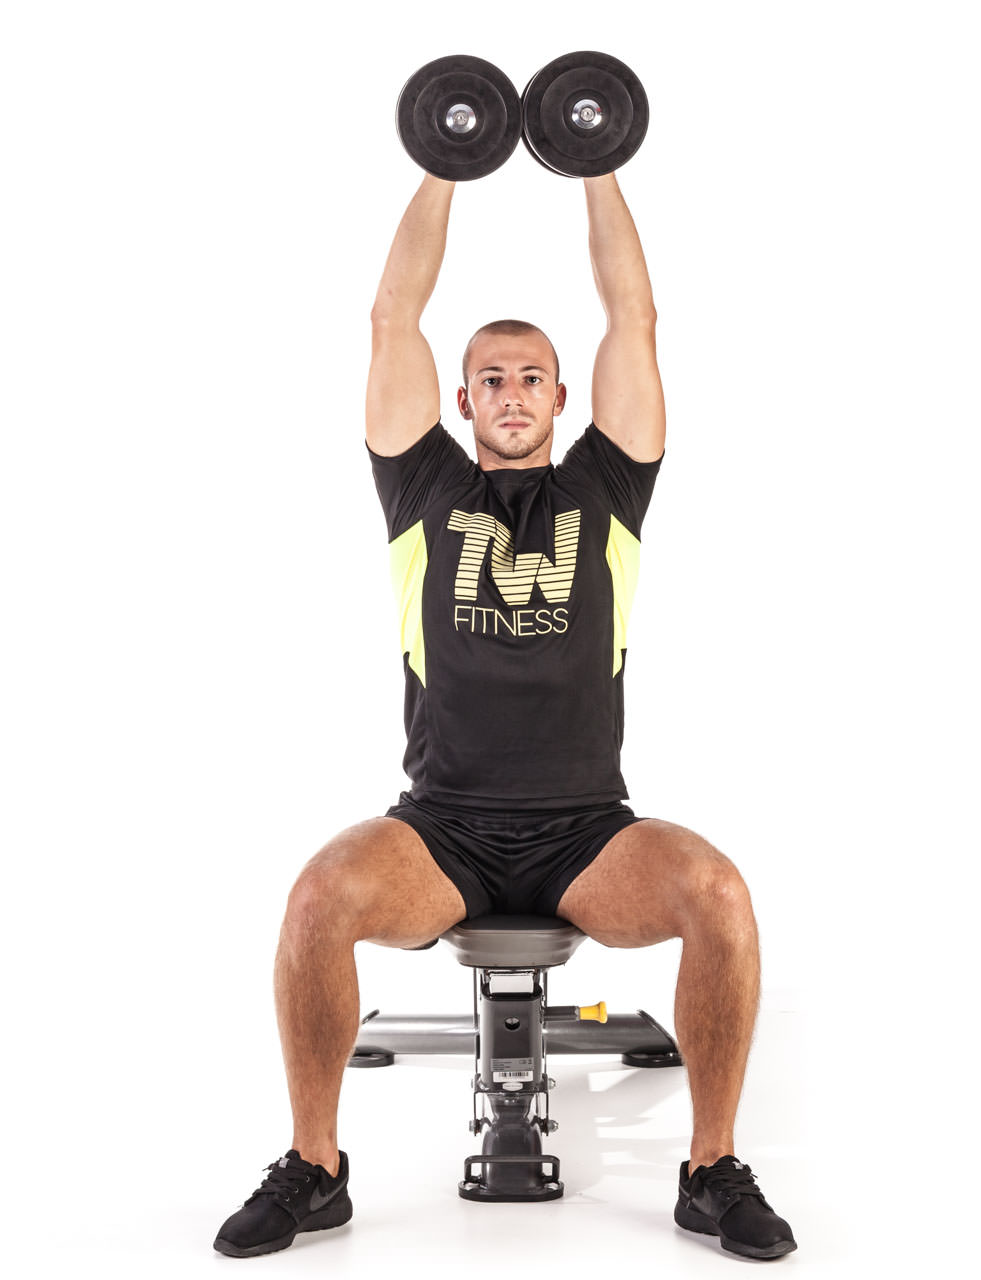 Seated Dumbbell Curl Press frame #2